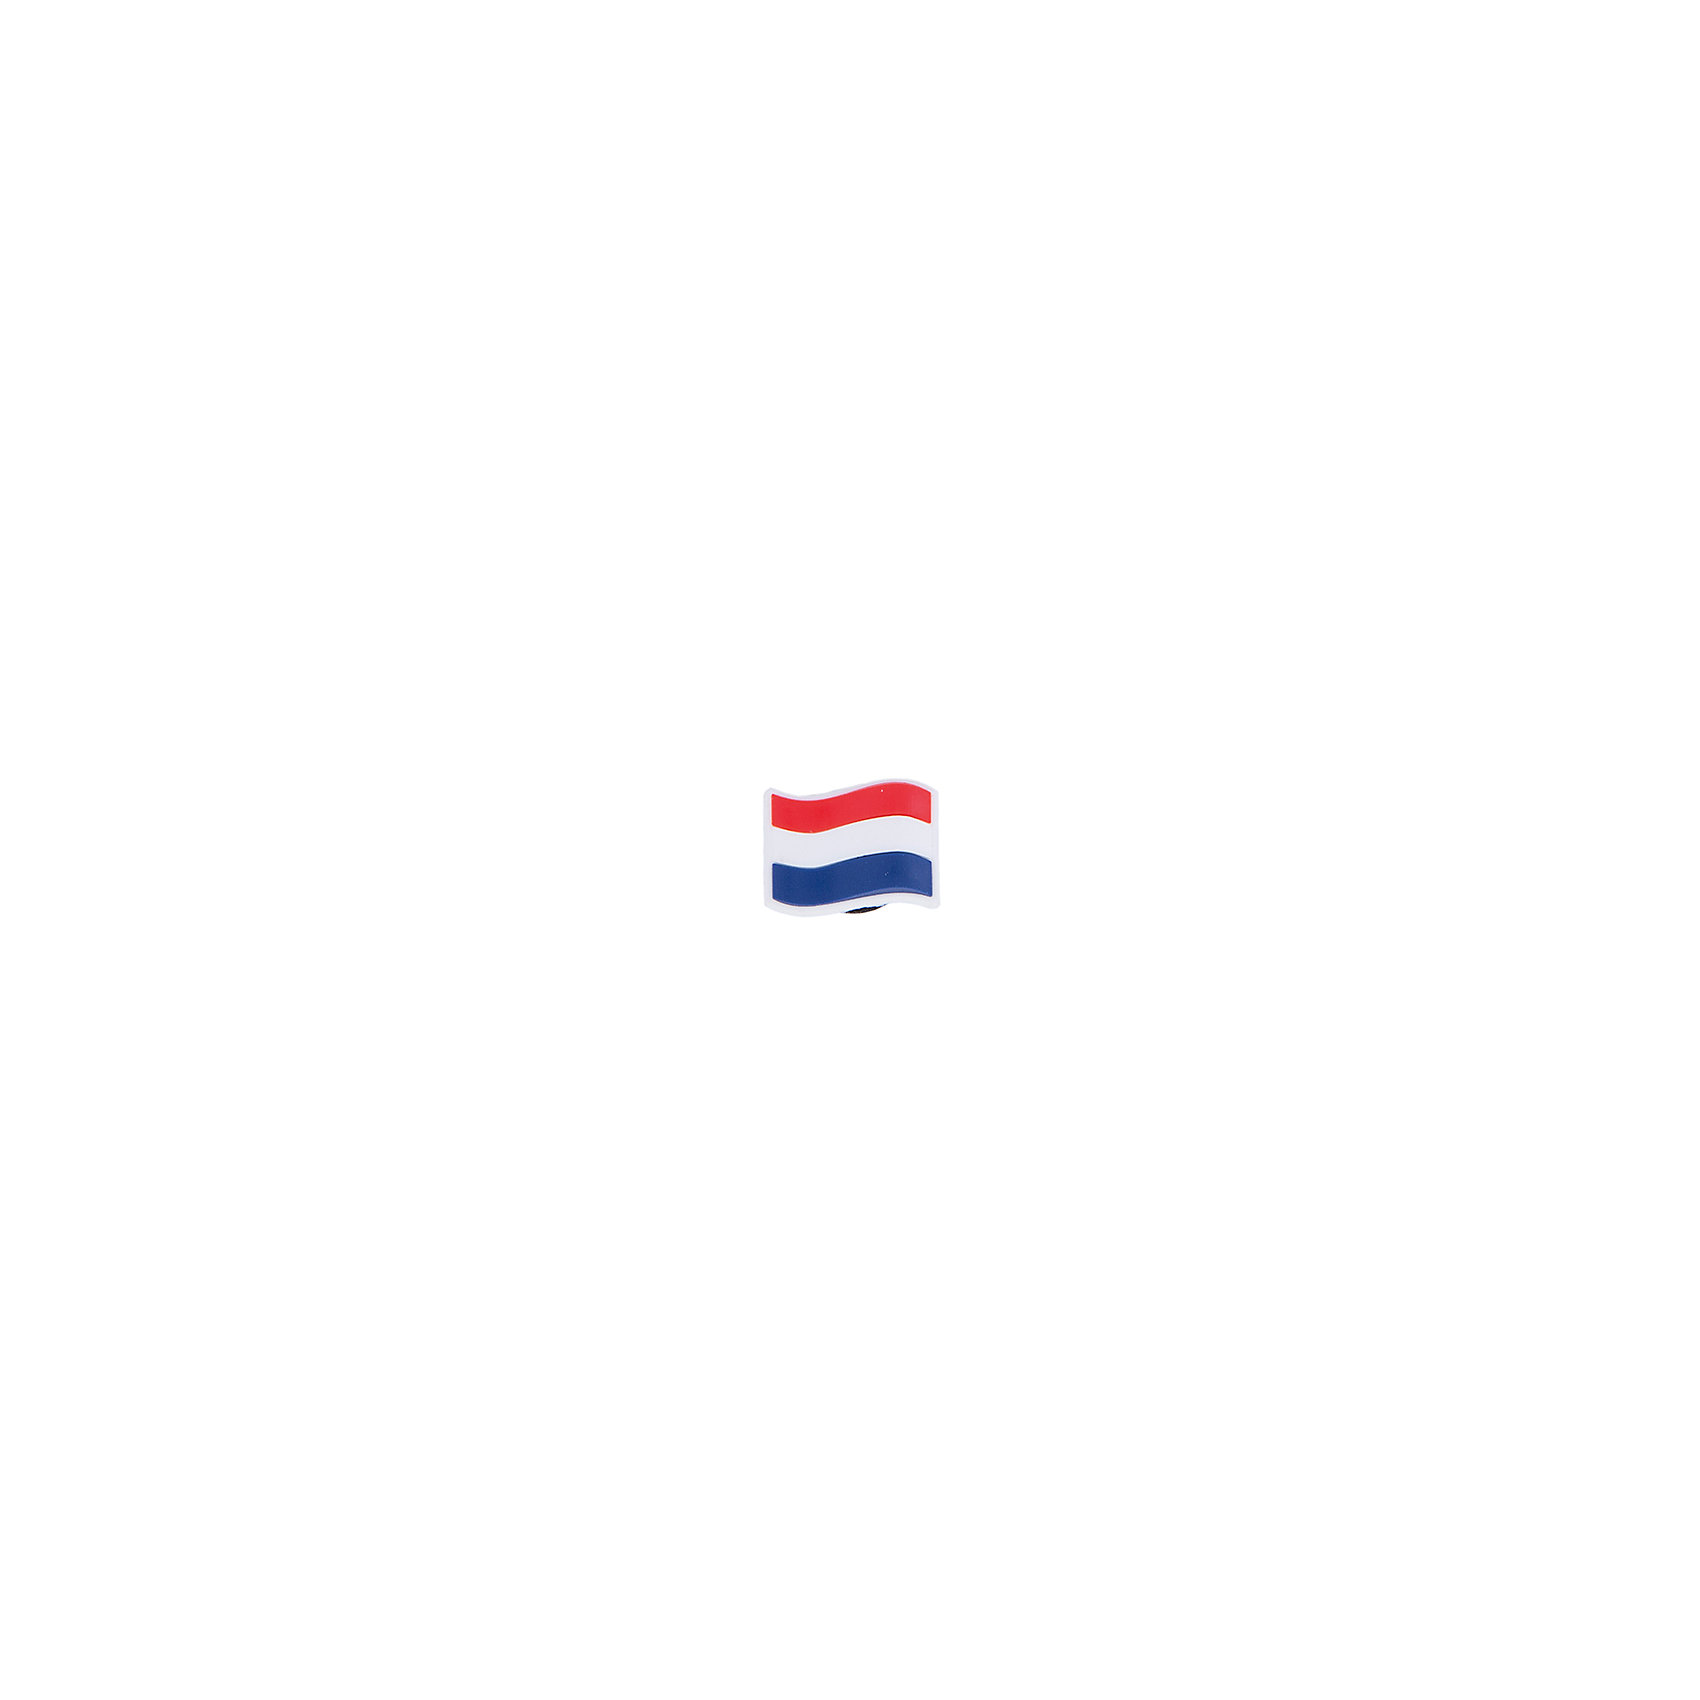 crocs Джибитс для сабо Crocs Holland Flag 12 crocs джибитс для сабо crocs led fmcmissile card